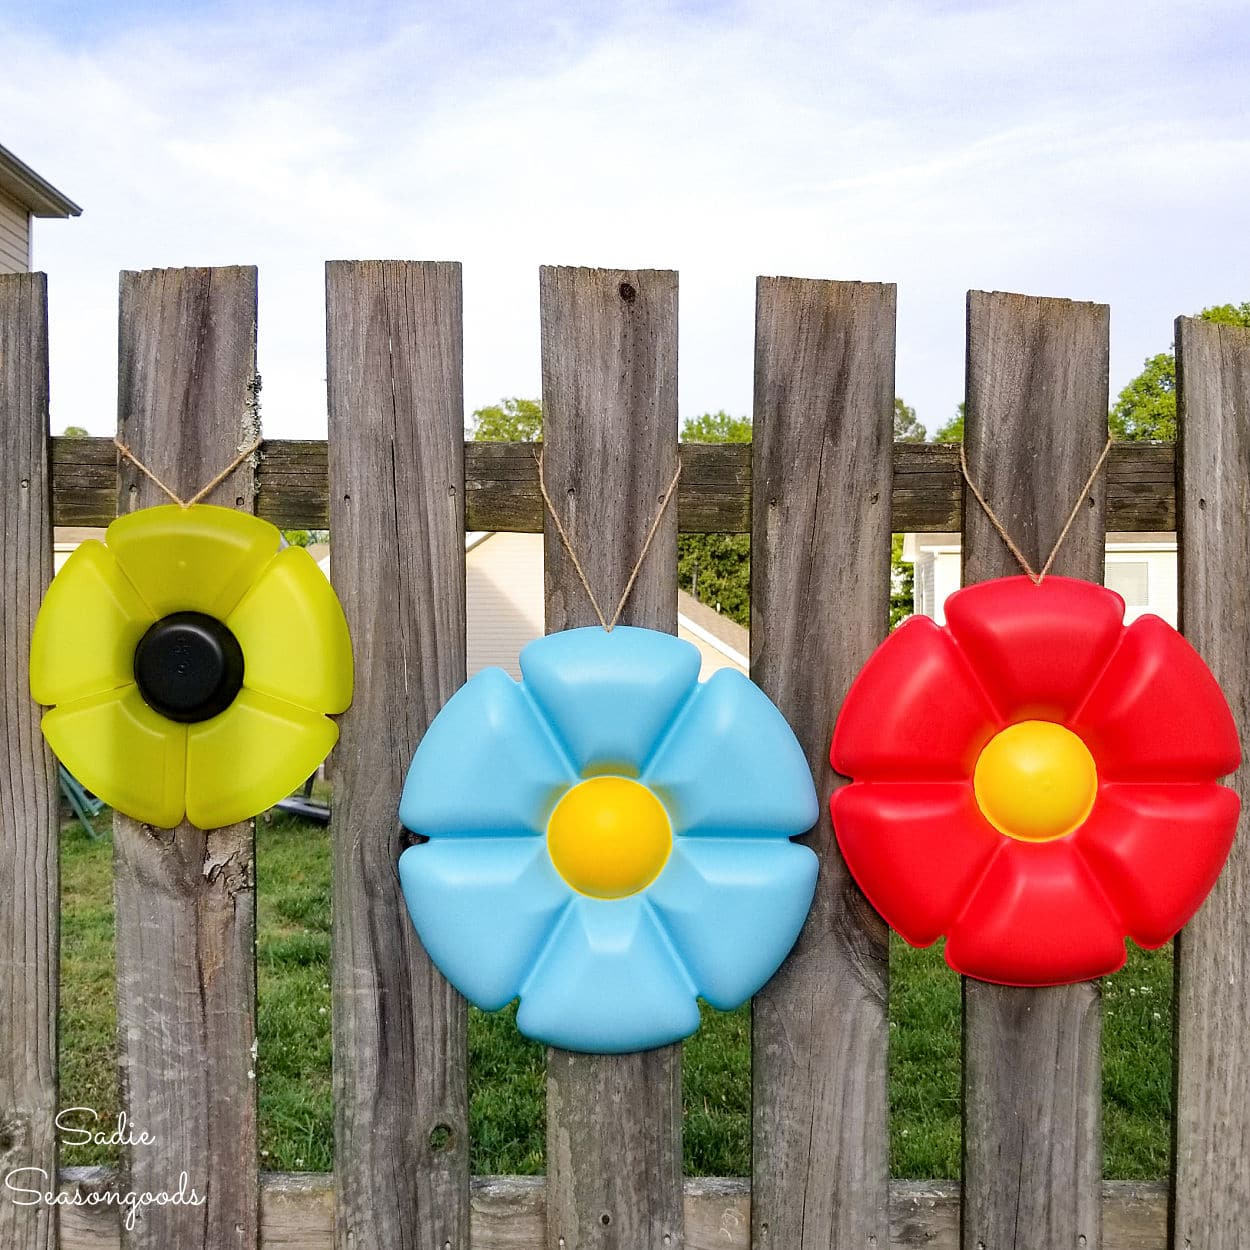 Plastic tray garden flower art by Sadie Seasongoods, featured on New Upcycled Projects to Make 583 on Funky Junk!